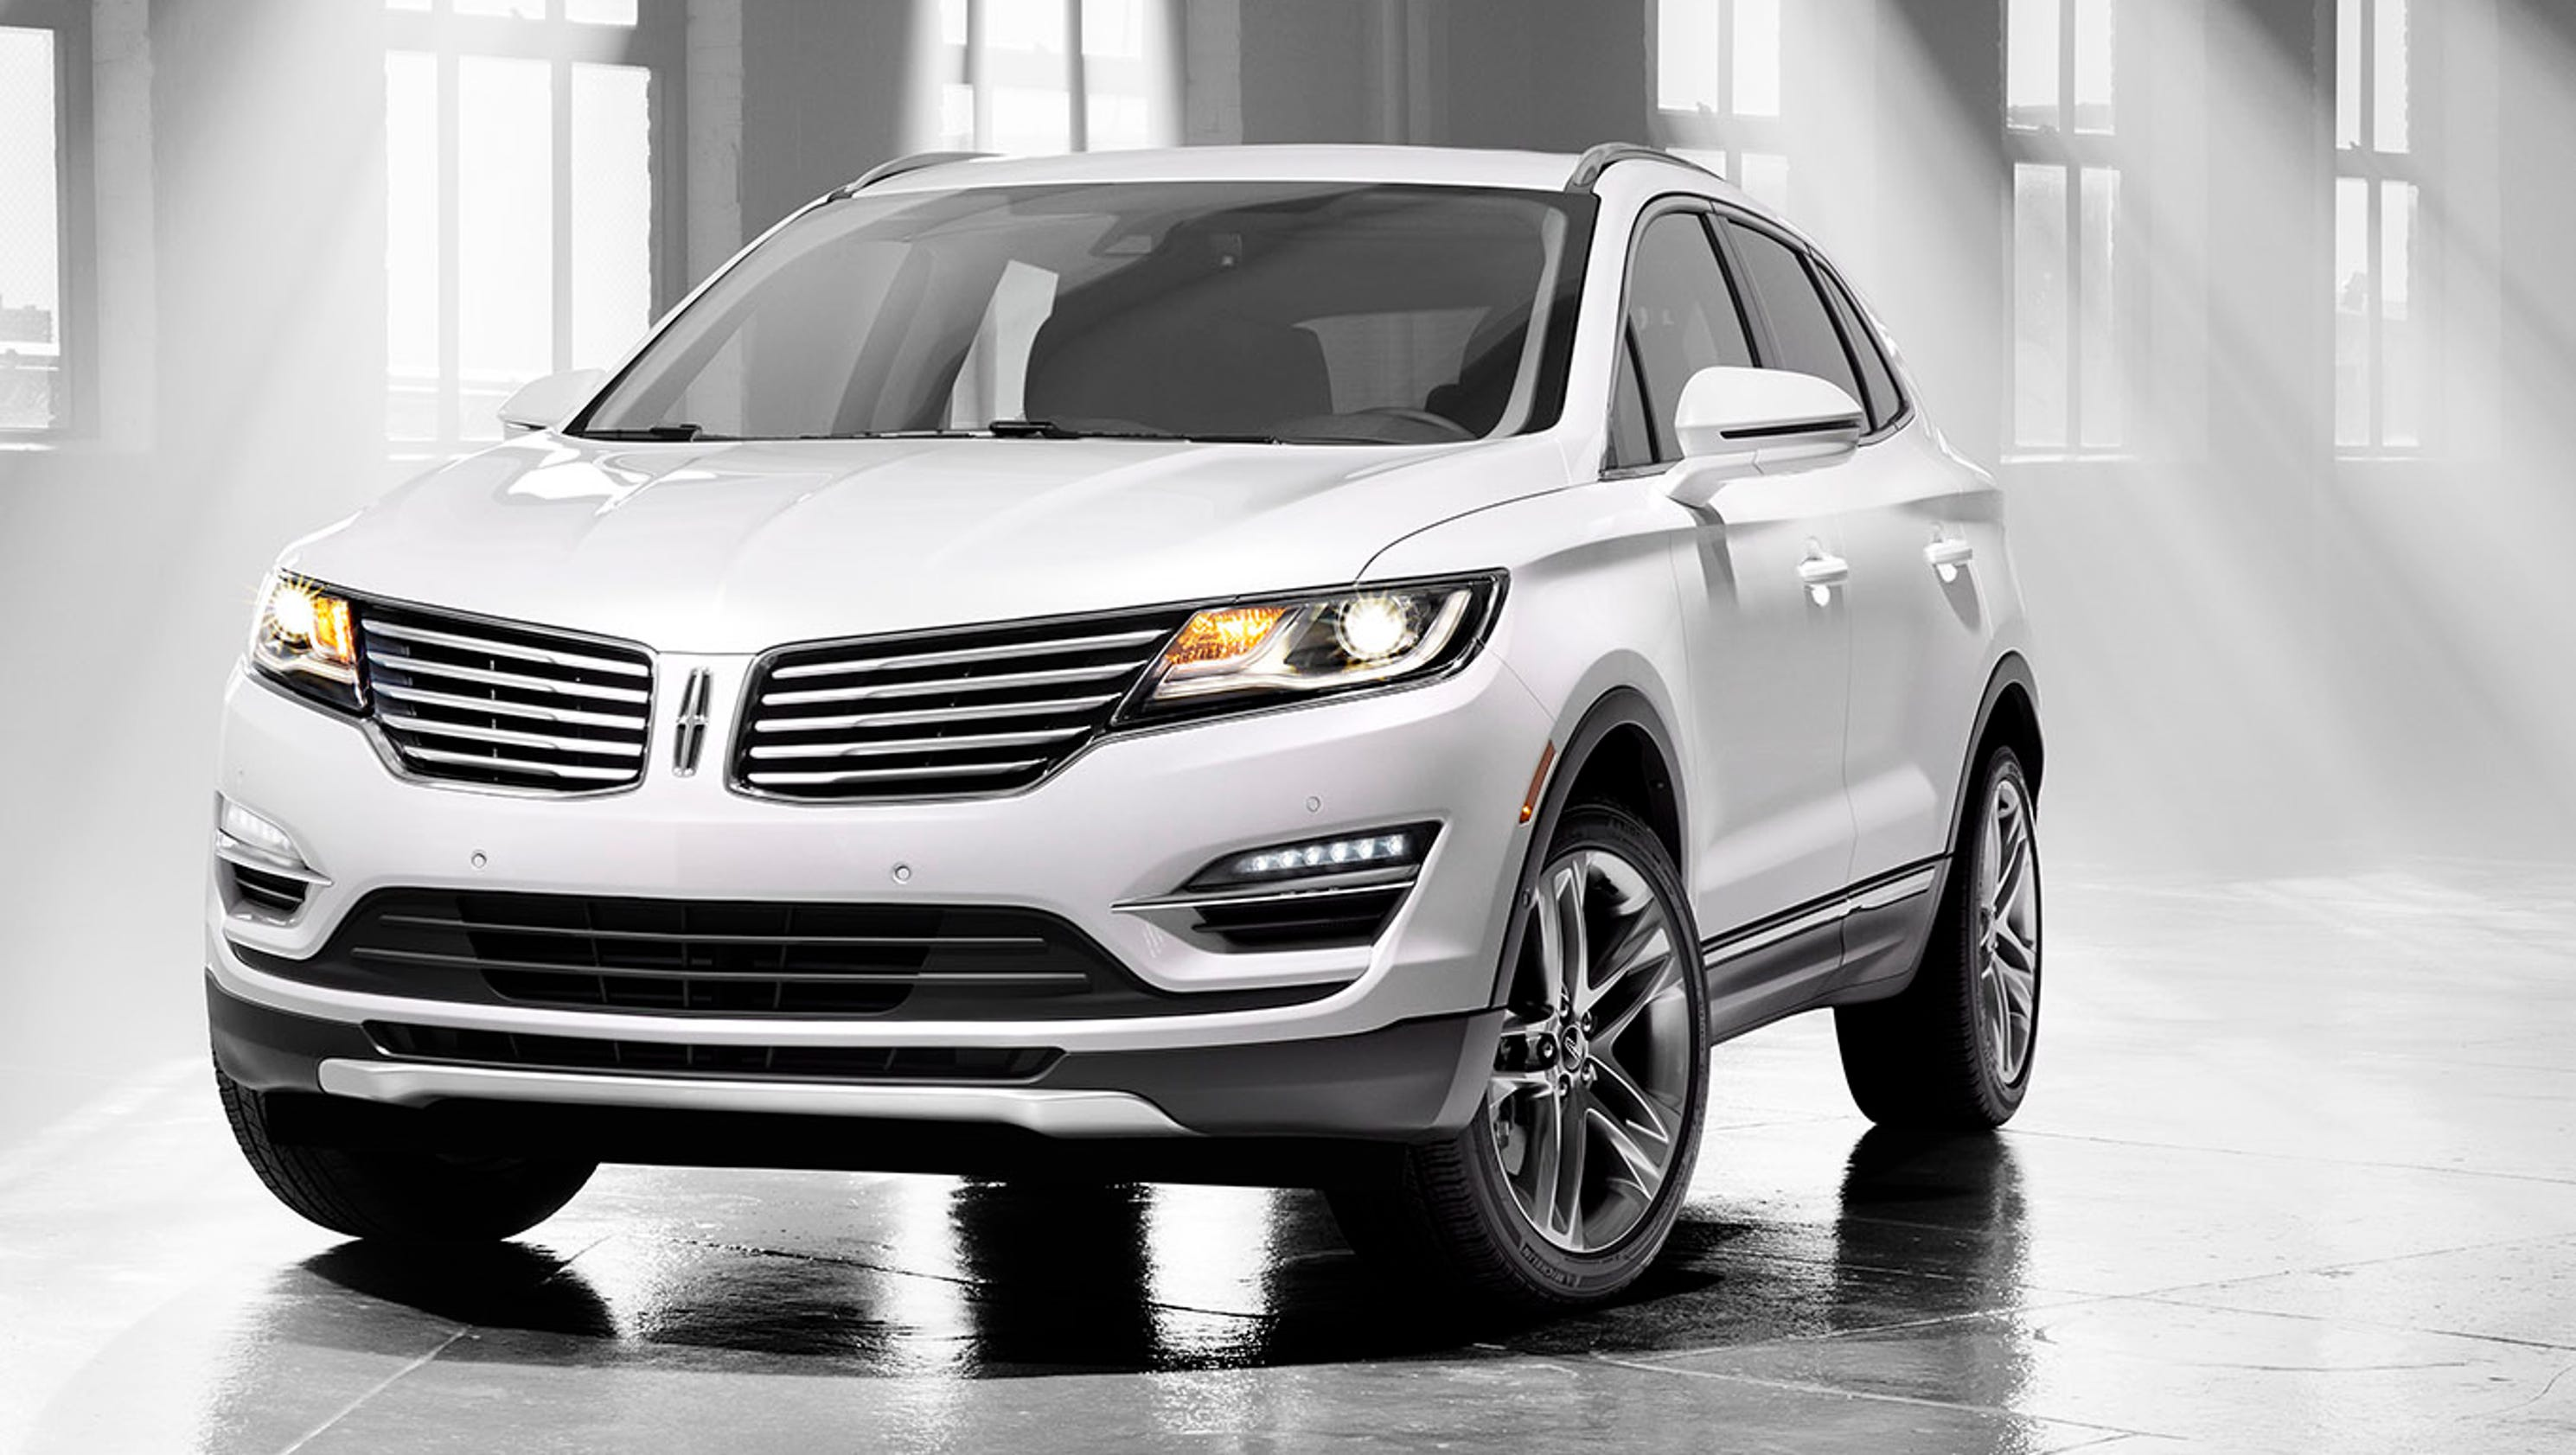 lincoln 39 s mkc delivers luxury to compact suv segment. Black Bedroom Furniture Sets. Home Design Ideas